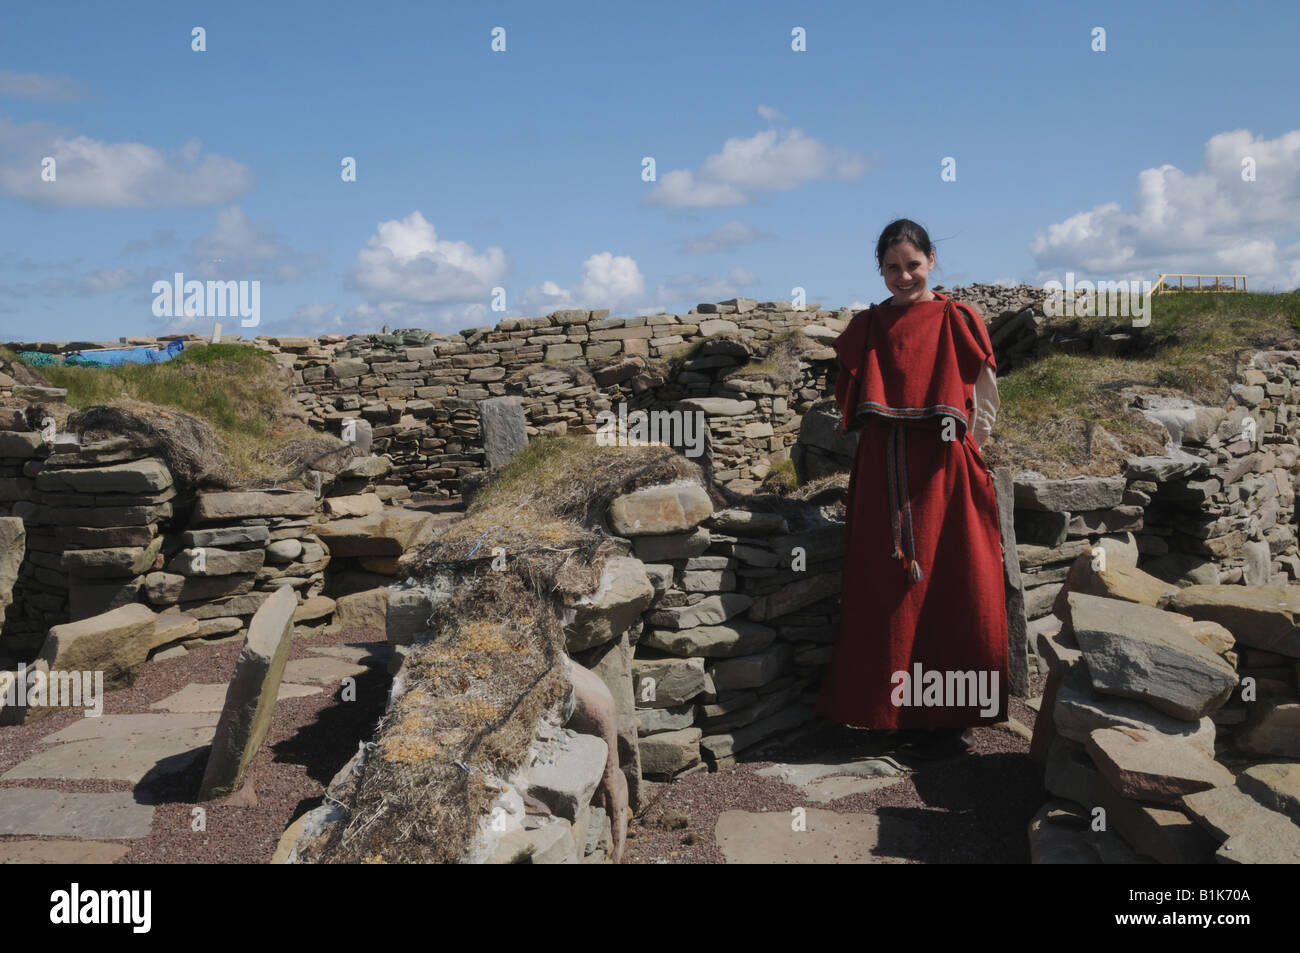 A guide at the 2,500-year-old settlement at Scatness, Shetland wears historically accurate Viking dress. - Stock Image